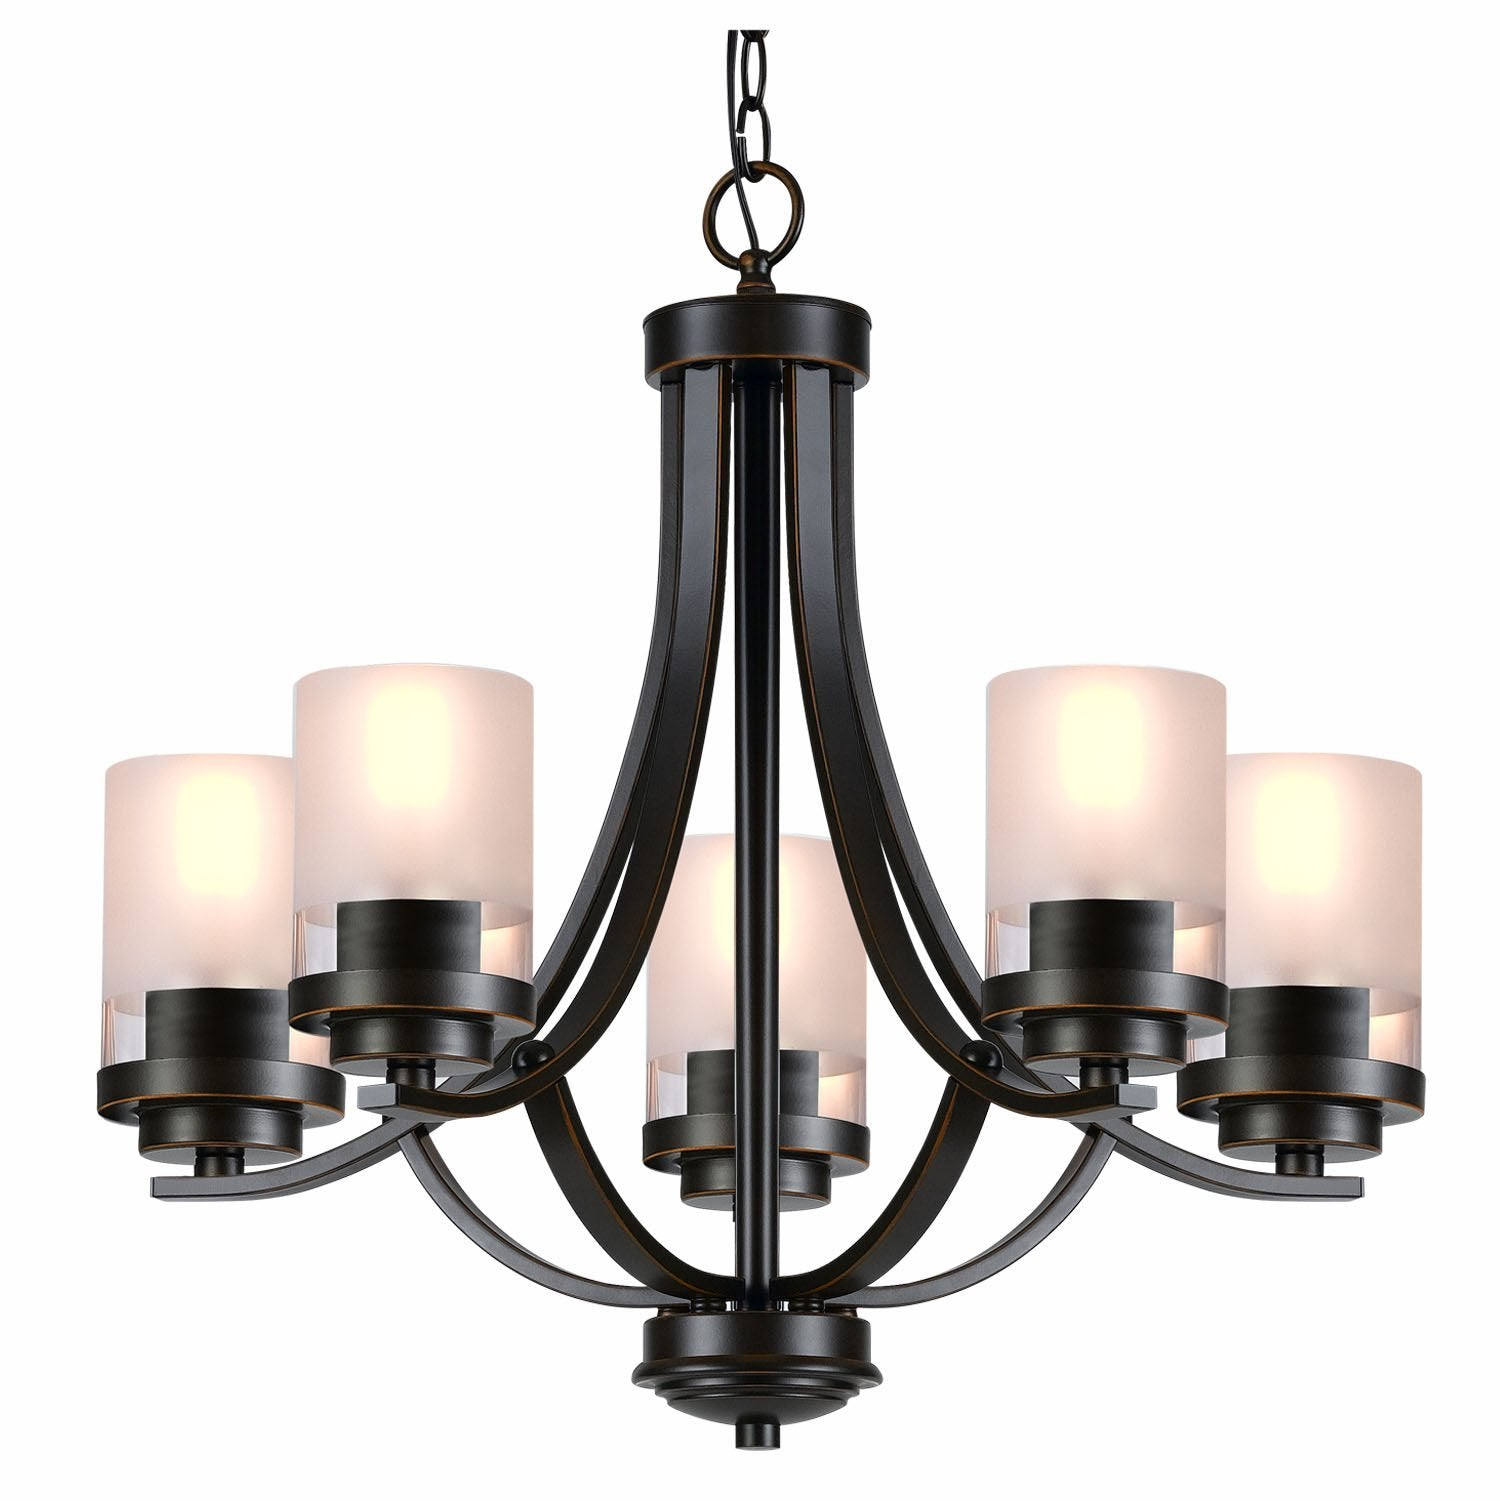 QPlus 5 Light Tulip Chandelier Pendant Lamp with E26 Bulb base & Clear/Frosted Glass Shades - Brushed Nickel / Bronze - QPlus Home - Brighten Your Life